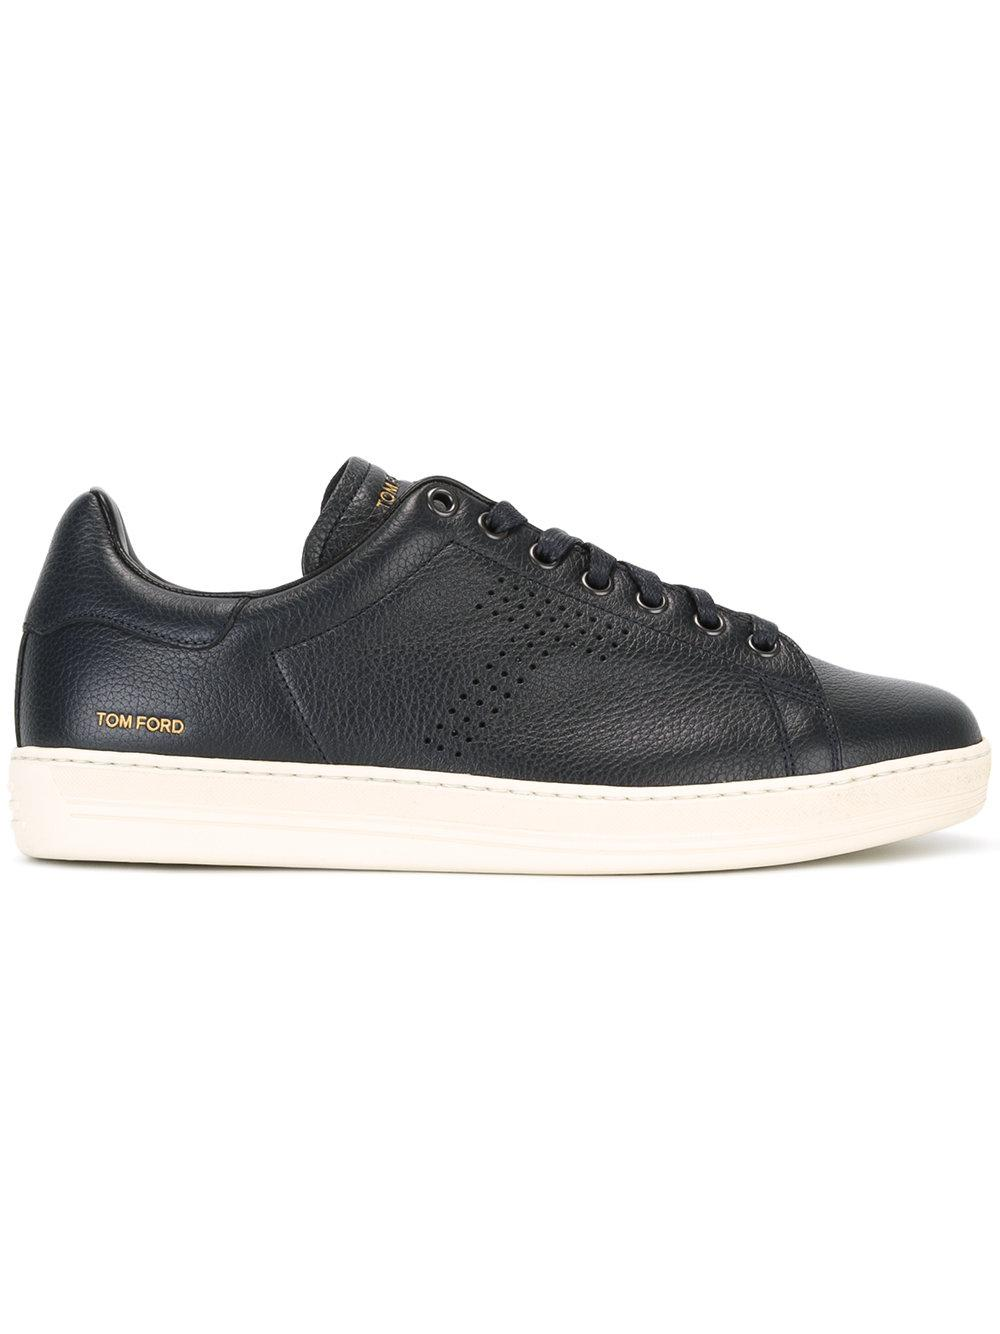 Tom ford Warwick Sneakers in Blue for Men